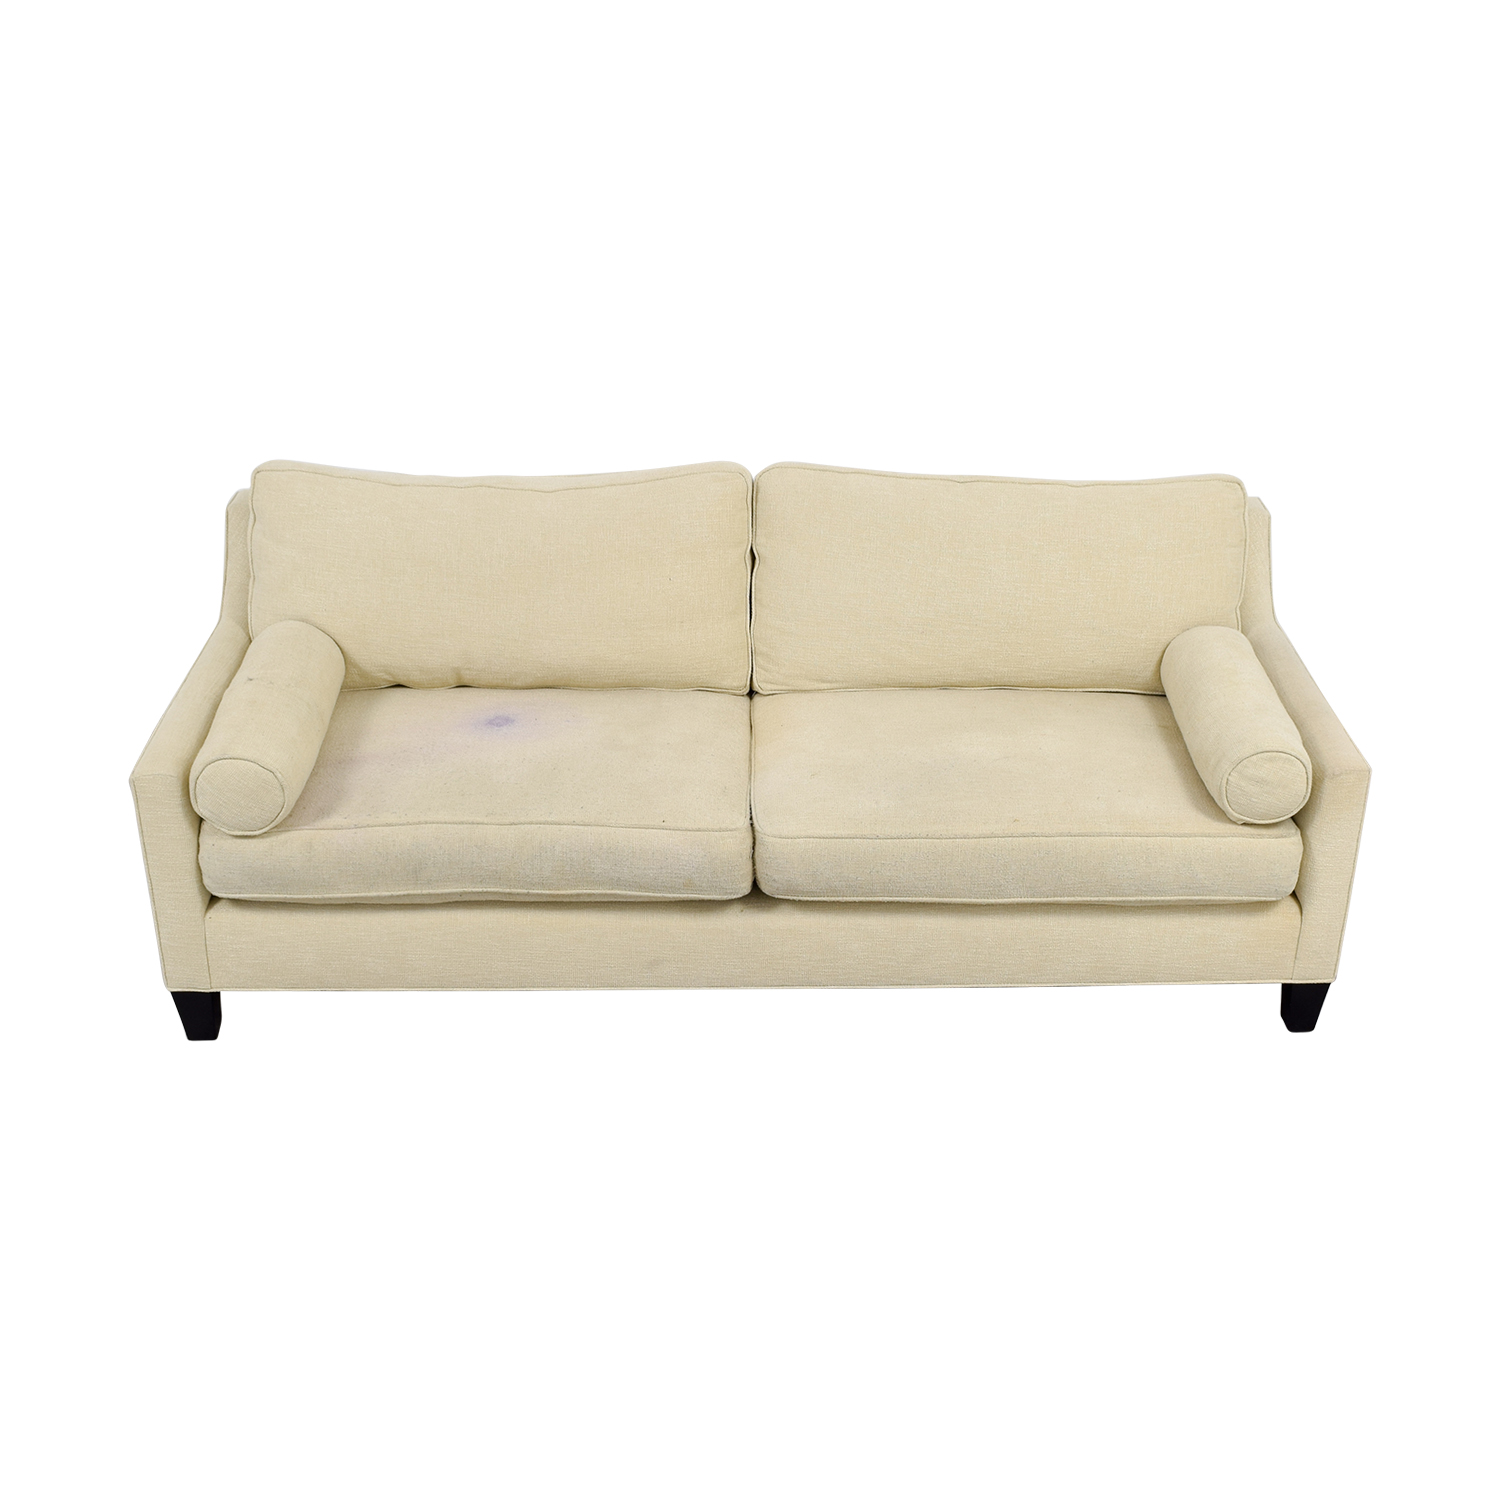 buy BSC Furniture BSC Furniture Beige Two-Cushion Sofa online